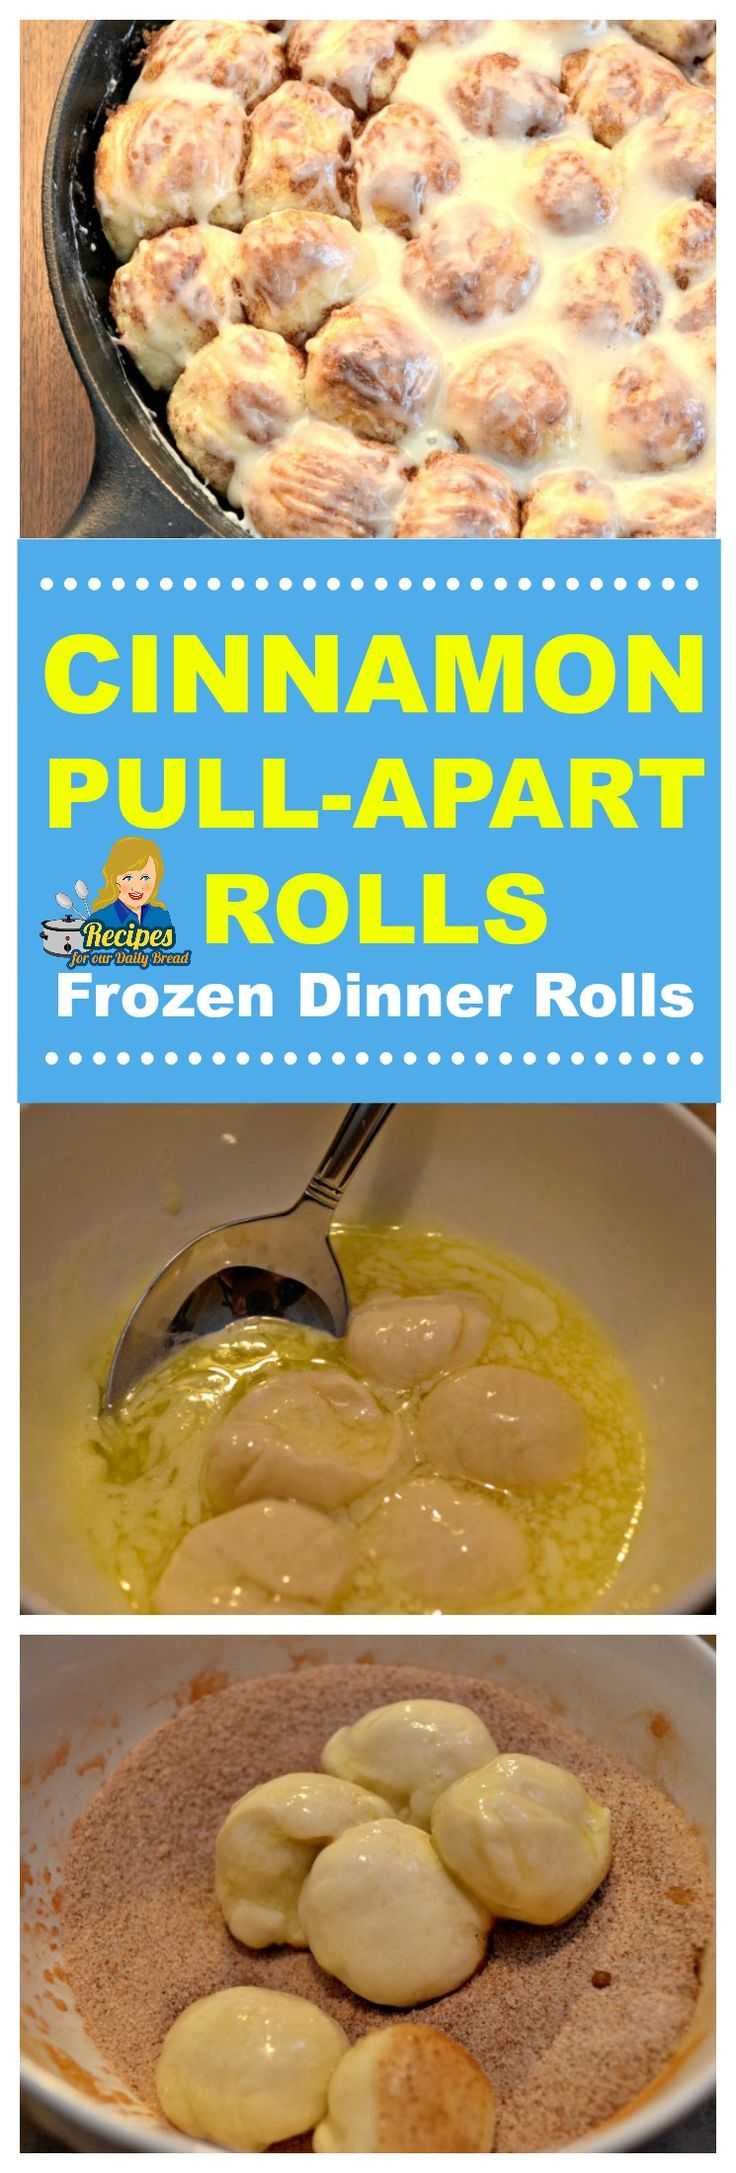 Cinnamon Pull-Apart Rolls are super simple to make with Frozen Dinner Rolls. I am going to give you step by step instructions to make it easy for you to make these fabulous Cinnamon Pull-Apart Rolls. SEE FULL RECIPE HERE: https://recipesforourdailybread.com/easy-cinnamon-pull-apart-rolls/